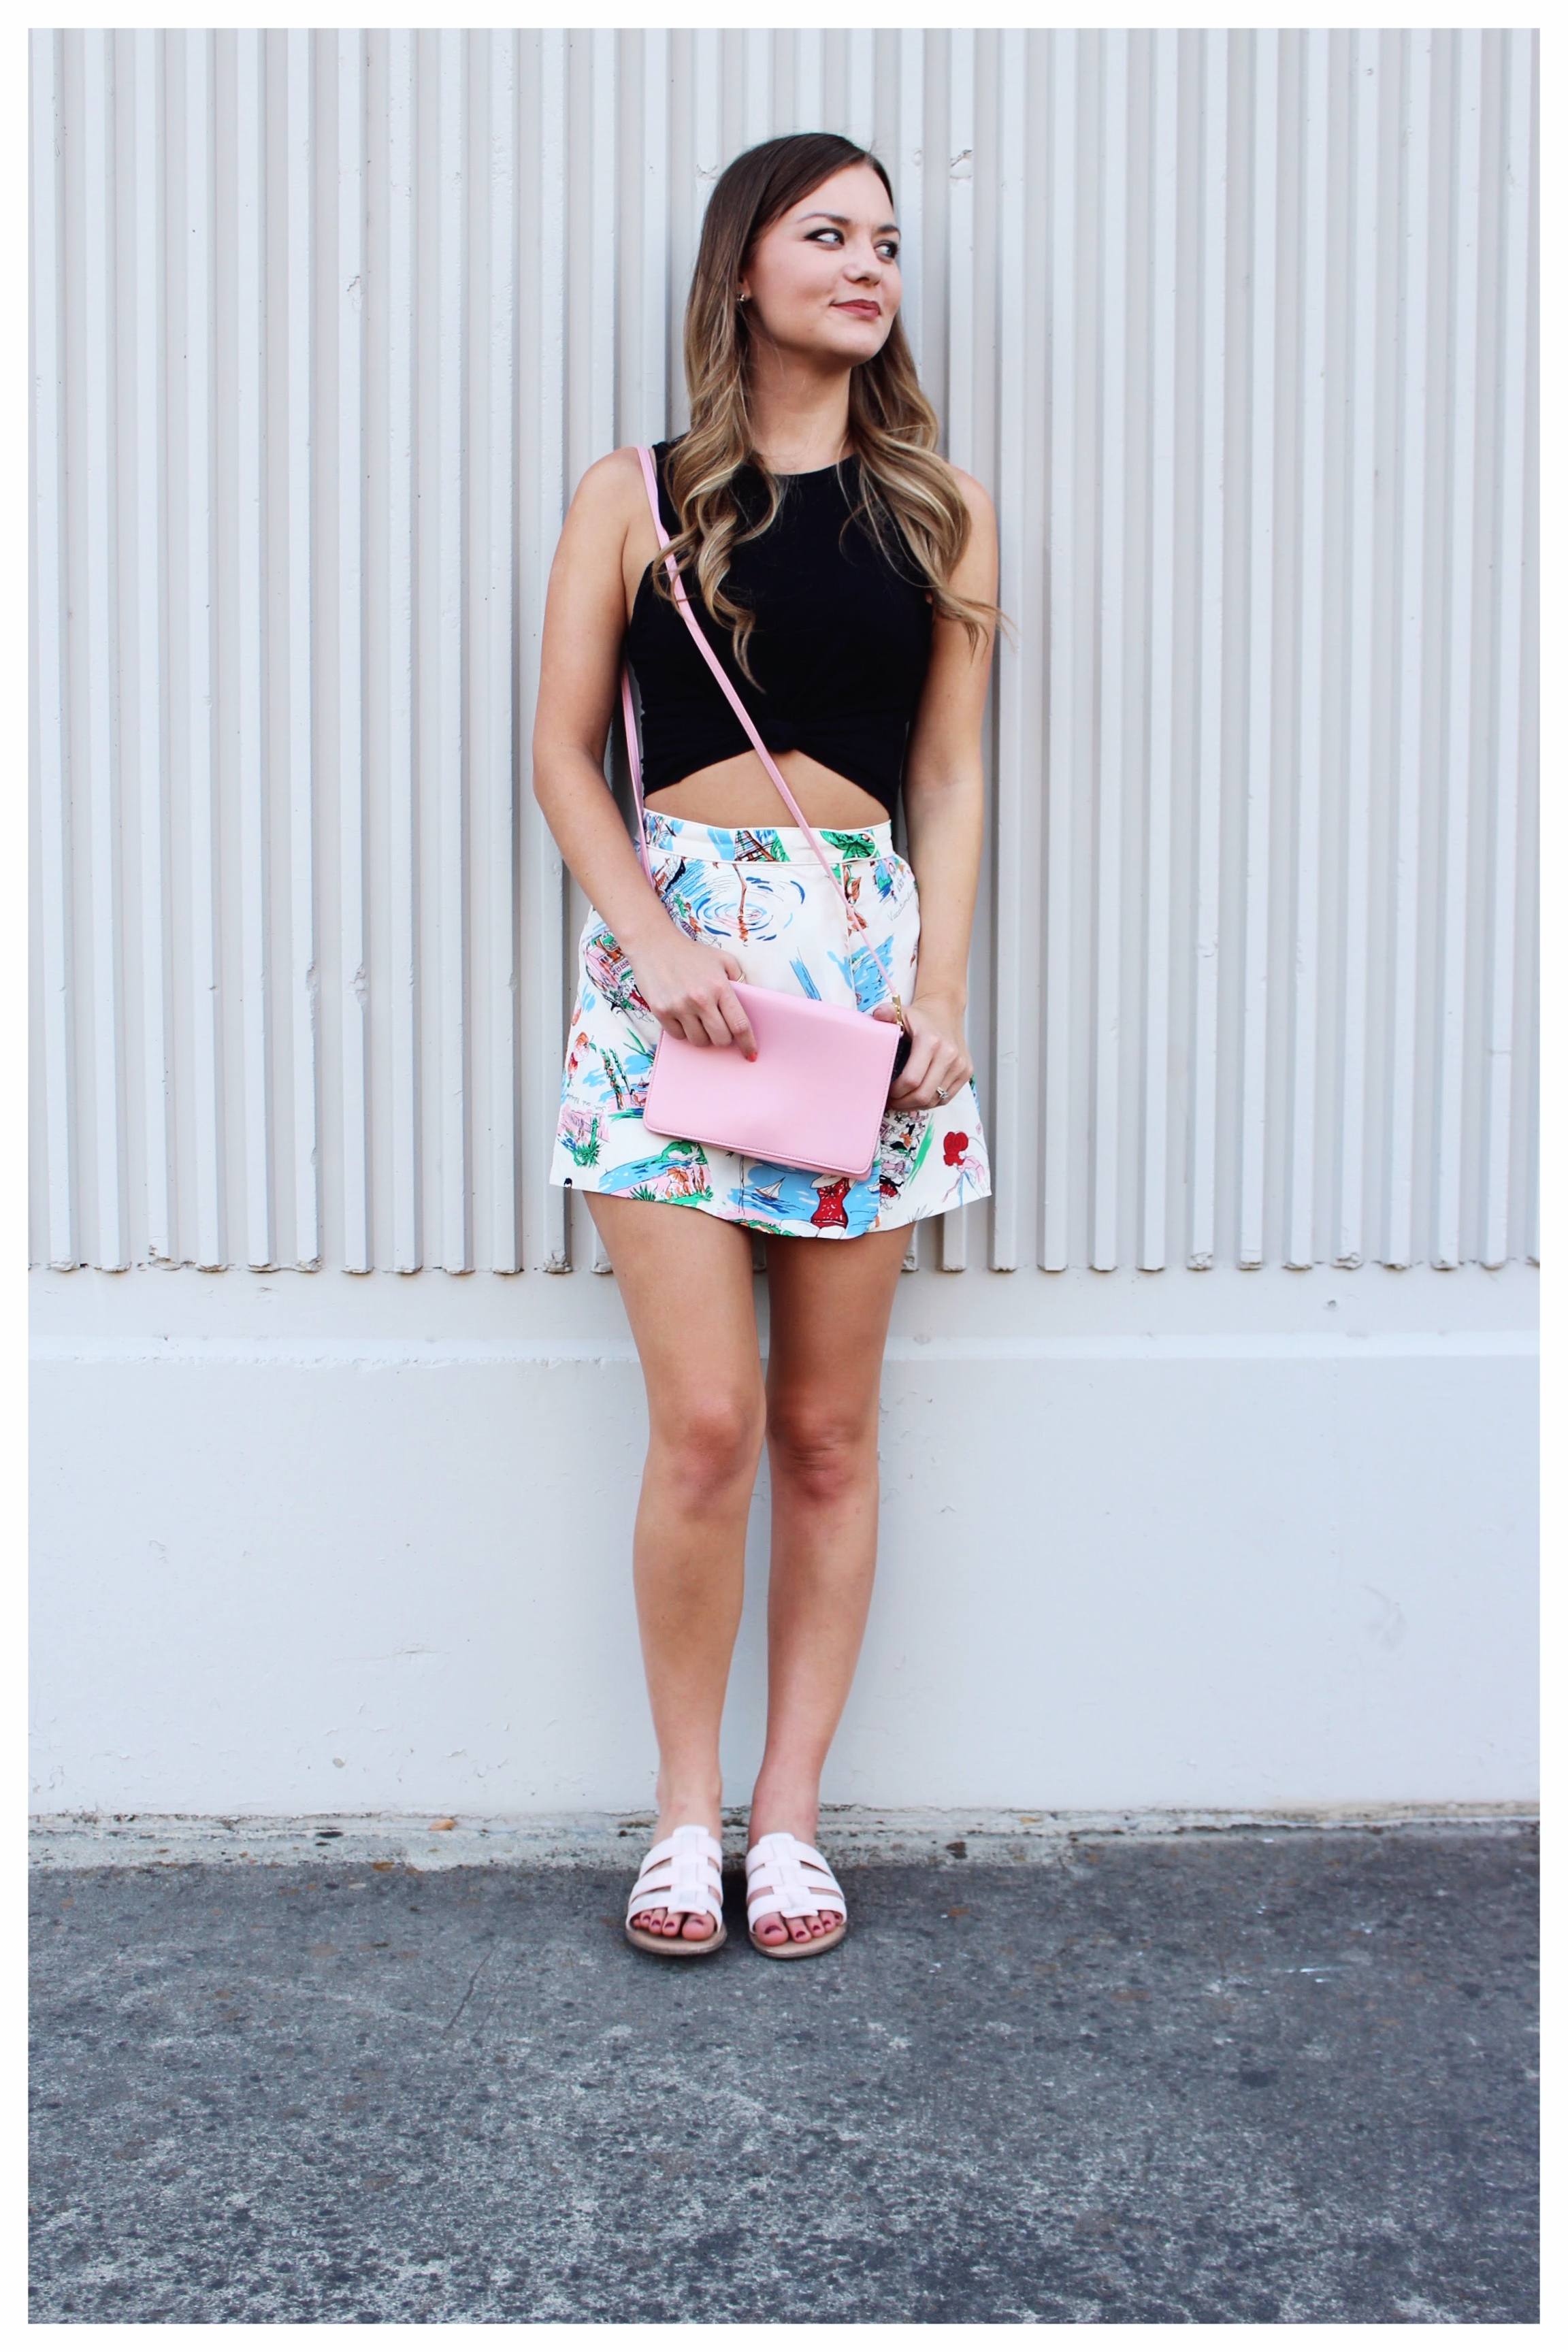 Pink Cross Body Bag and Blush Pink Sandals